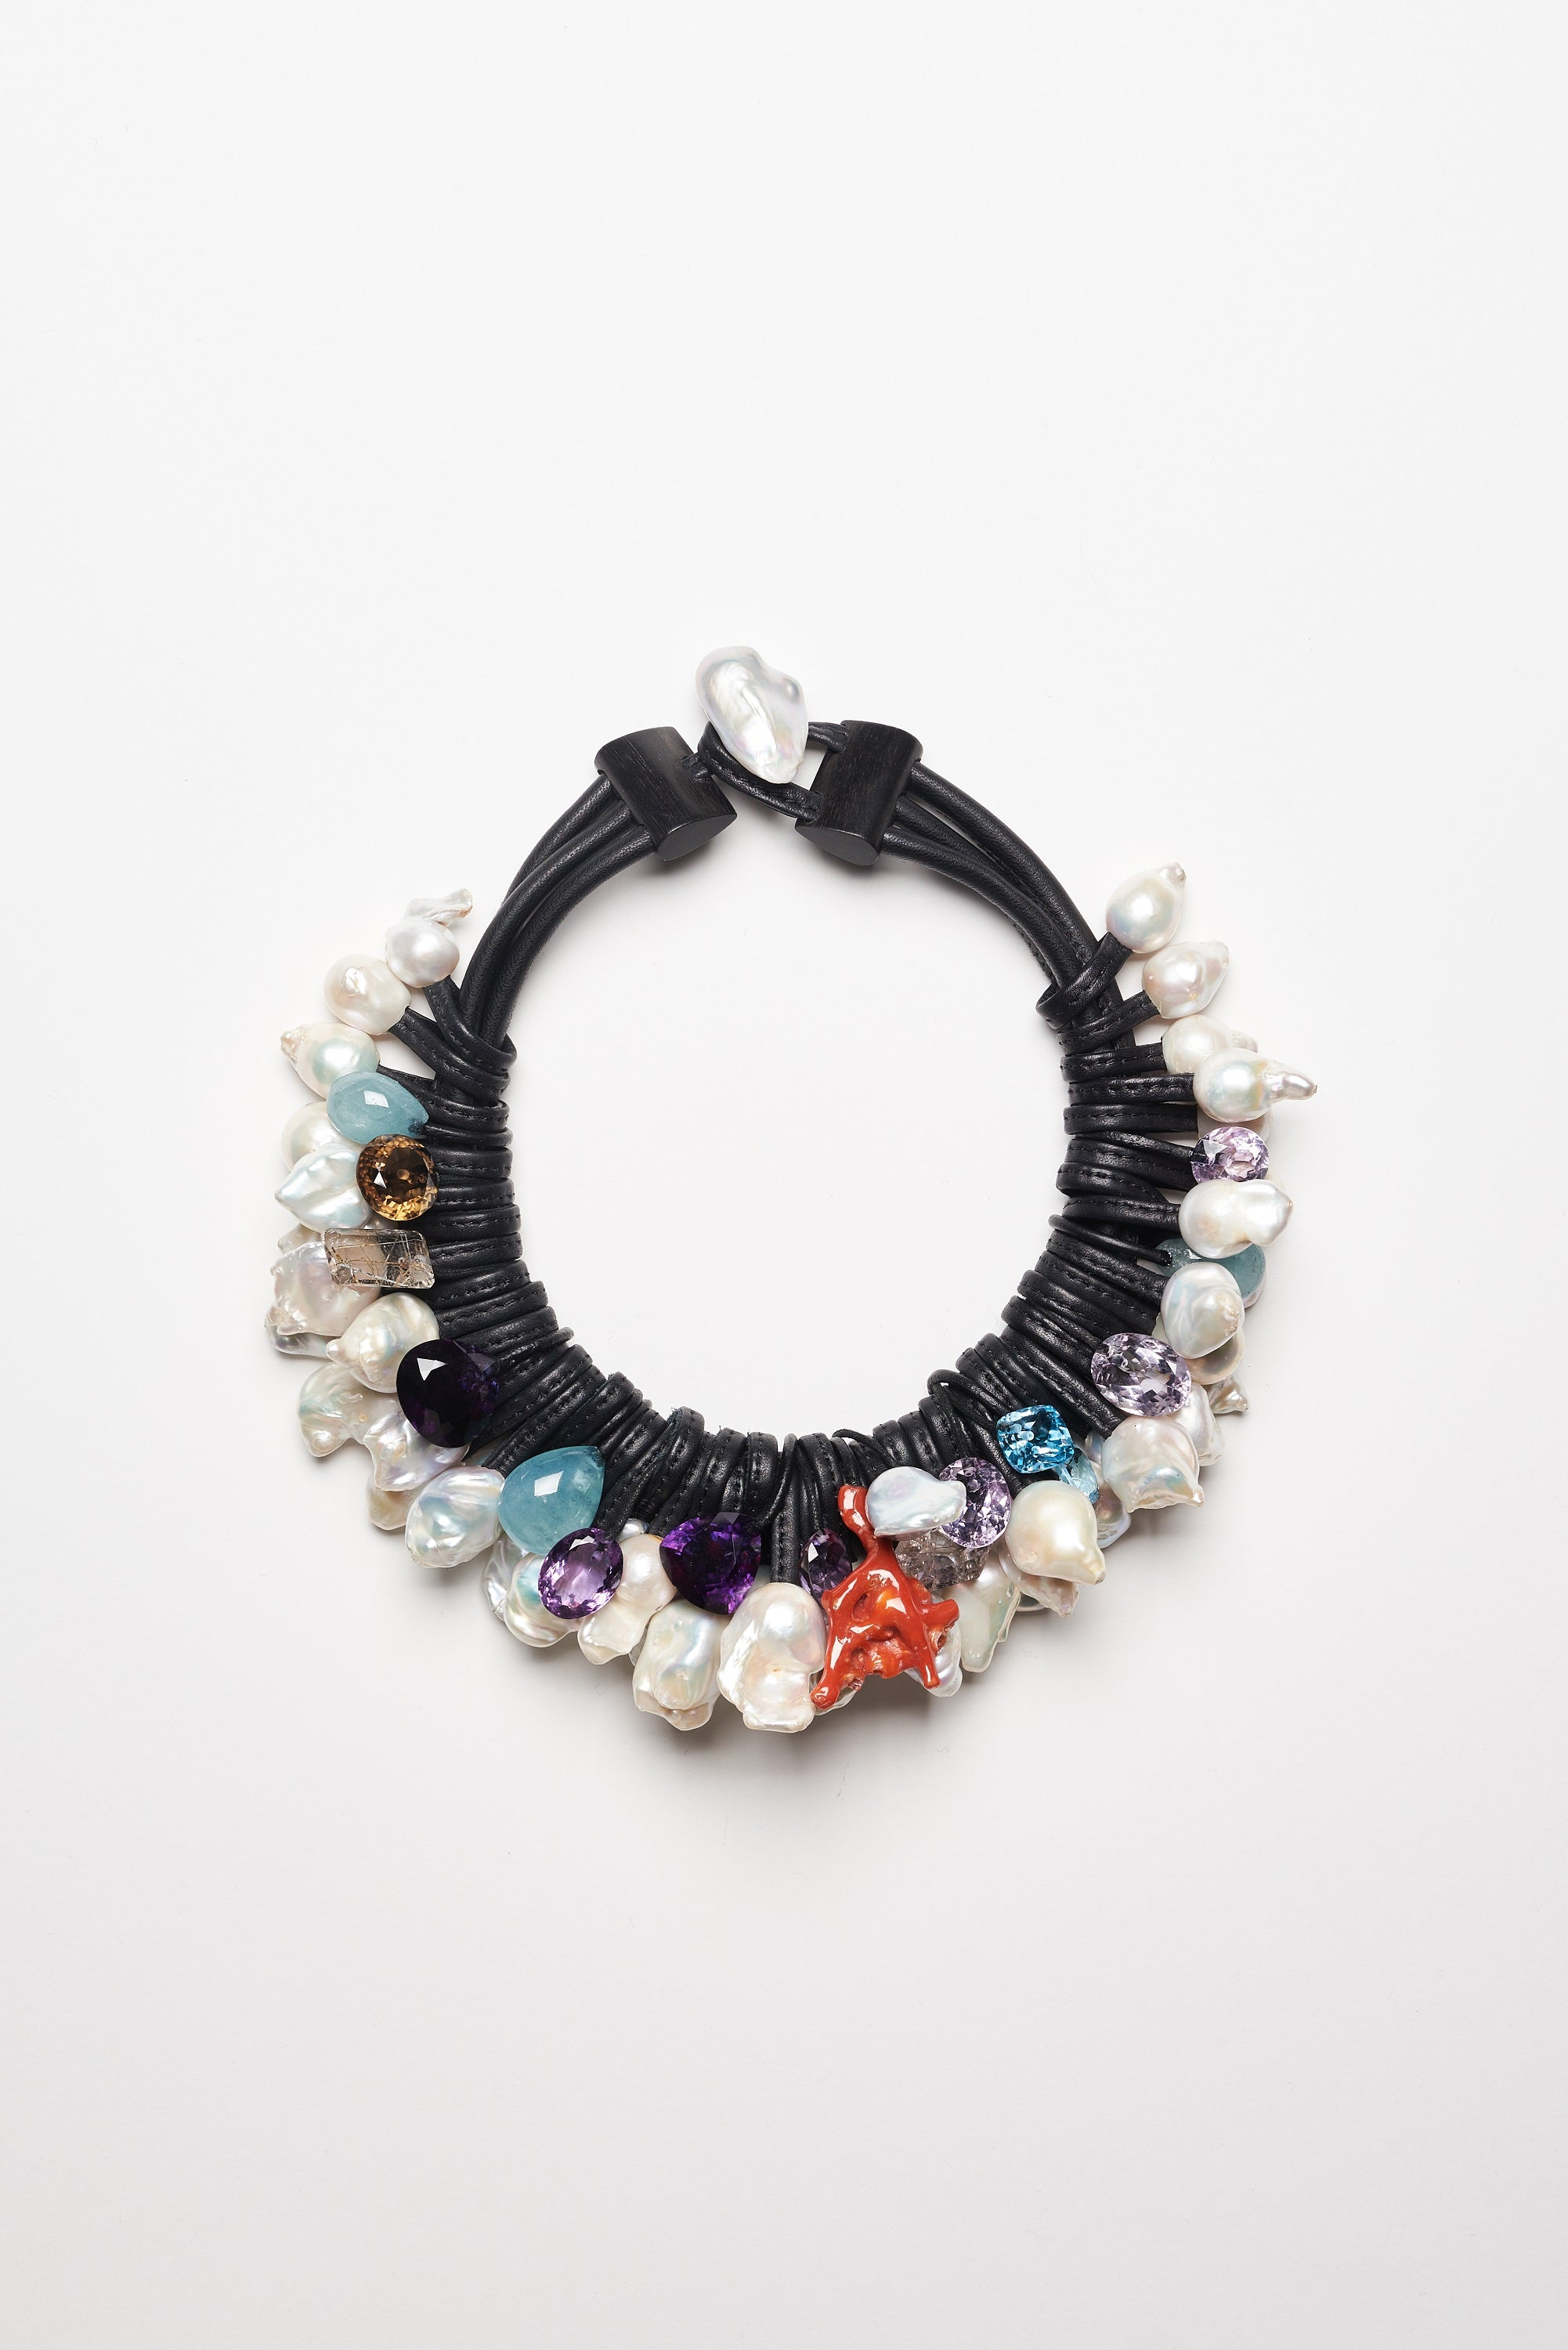 Necklace in pearls and stones